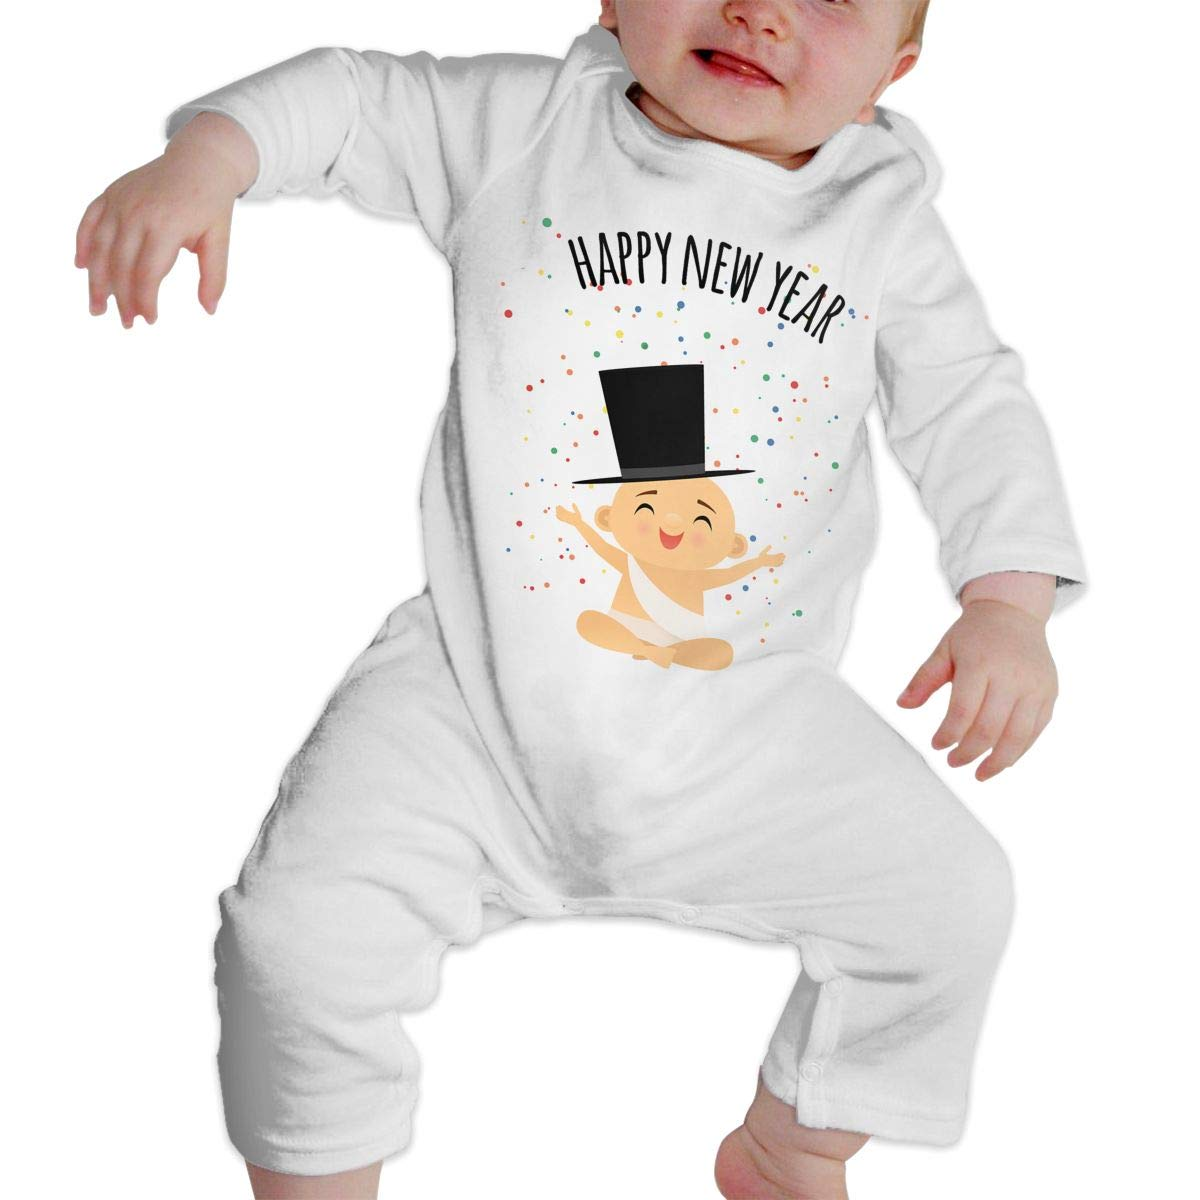 Baby O-Neck Long Sleeve Solid Color Climbing Clothes Baby Celebrating New Year Crawling Suit